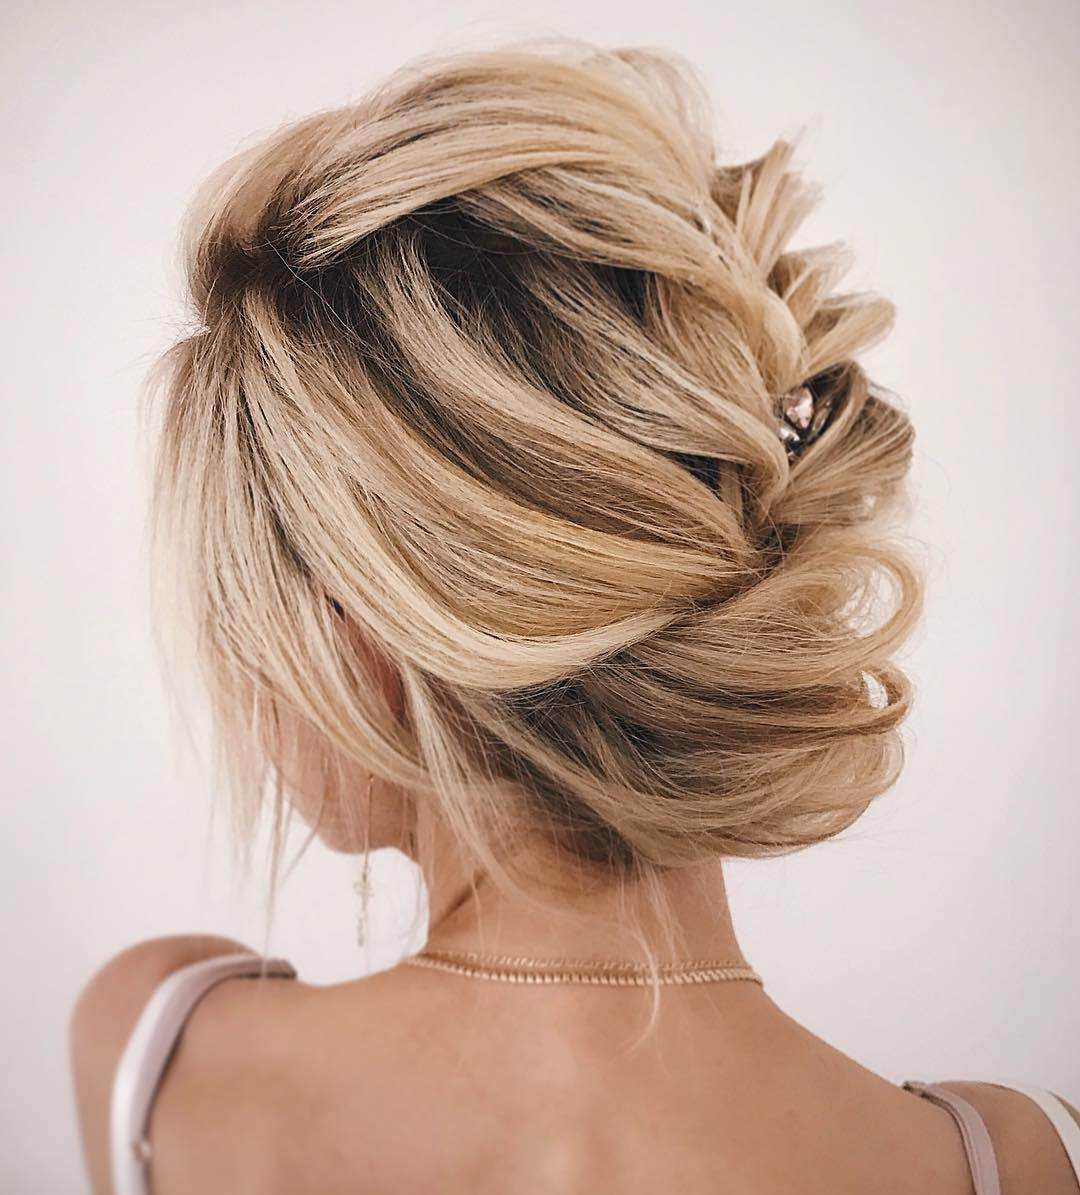 Loose Braid and Wrap Updo